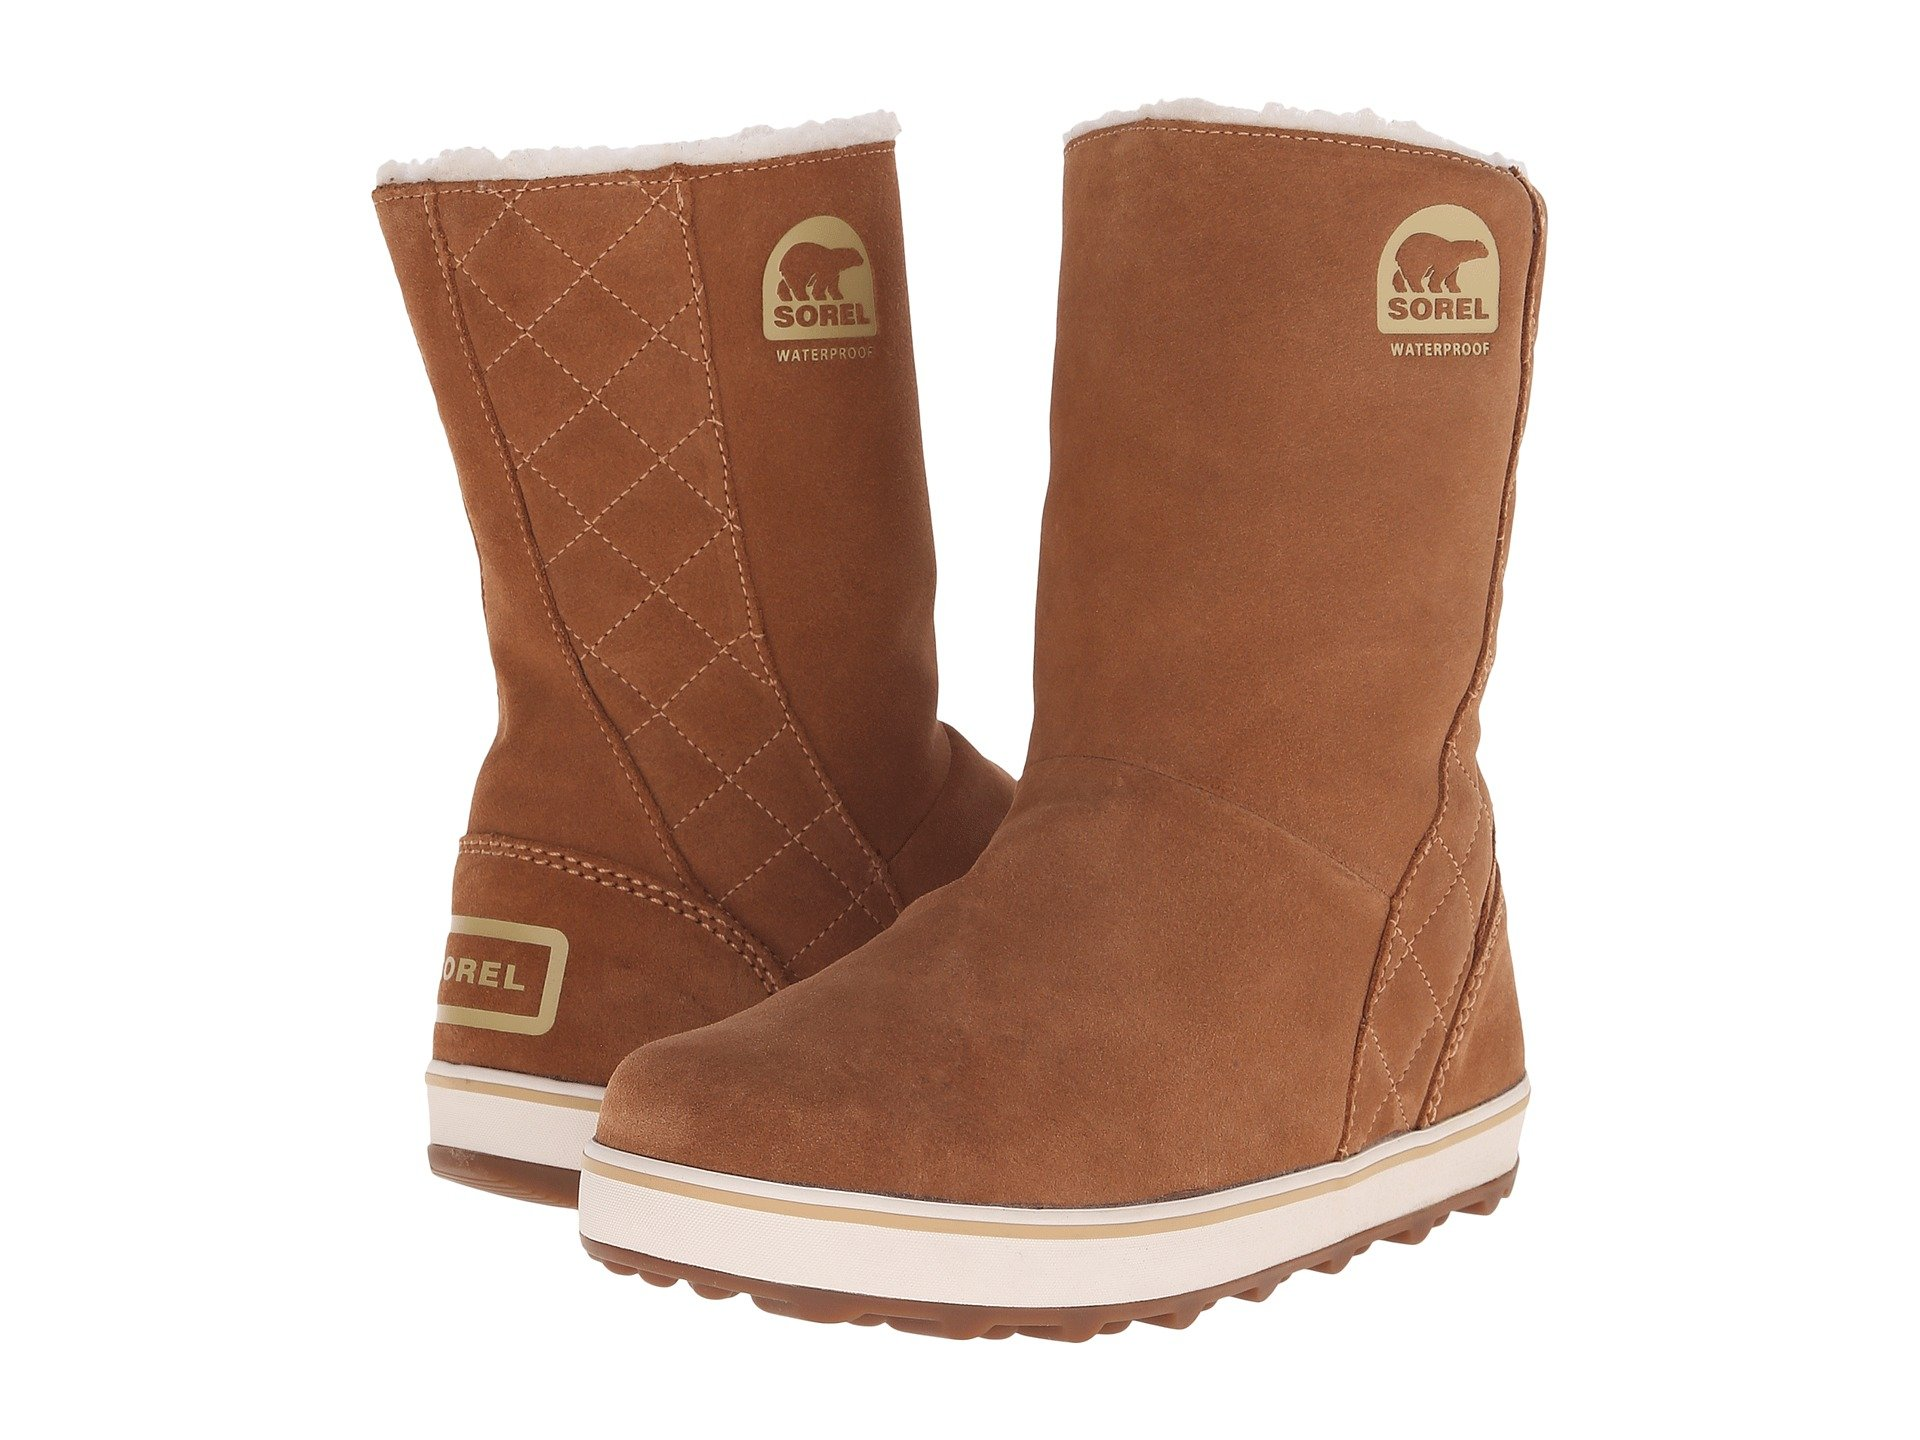 Sorel, Boots, Women, Quilted   Shipped Free at Zappos : quilted brown boots - Adamdwight.com